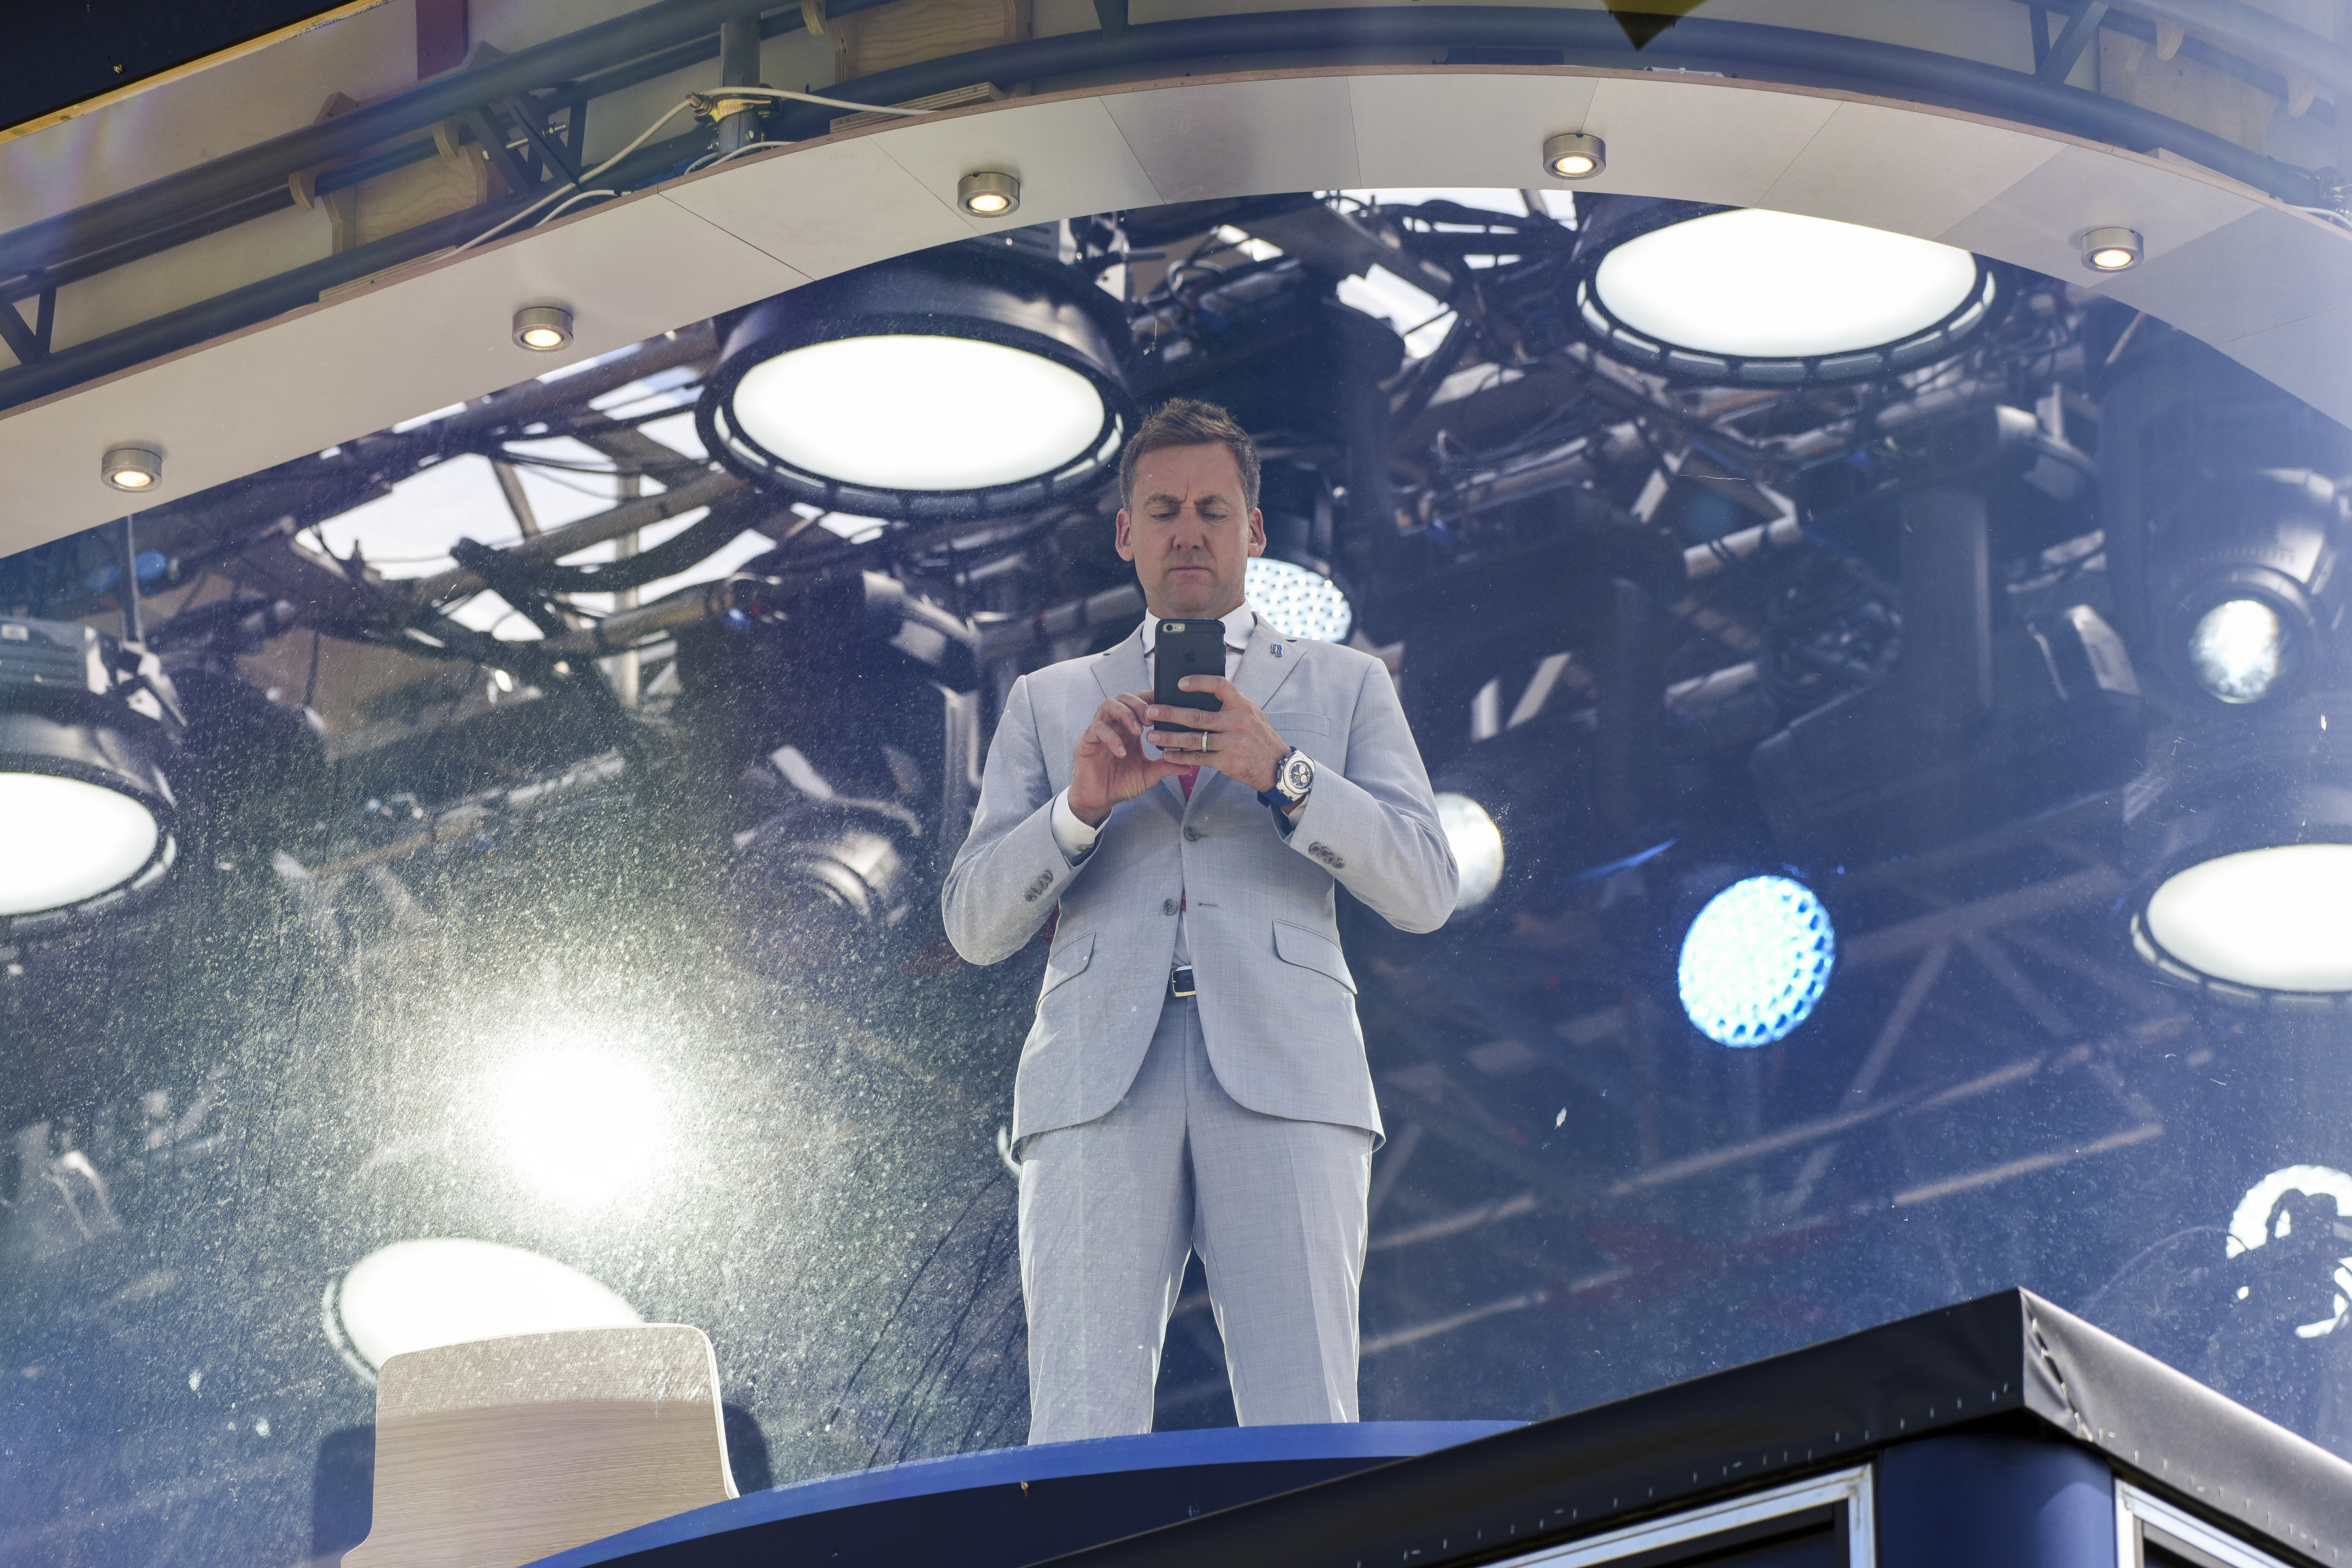 Ian Poulter takes pictures with his Apple iPhone from the Sky Sports television broadcast booth during the first round on day one of the 145th Open Championship at Royal Troon.